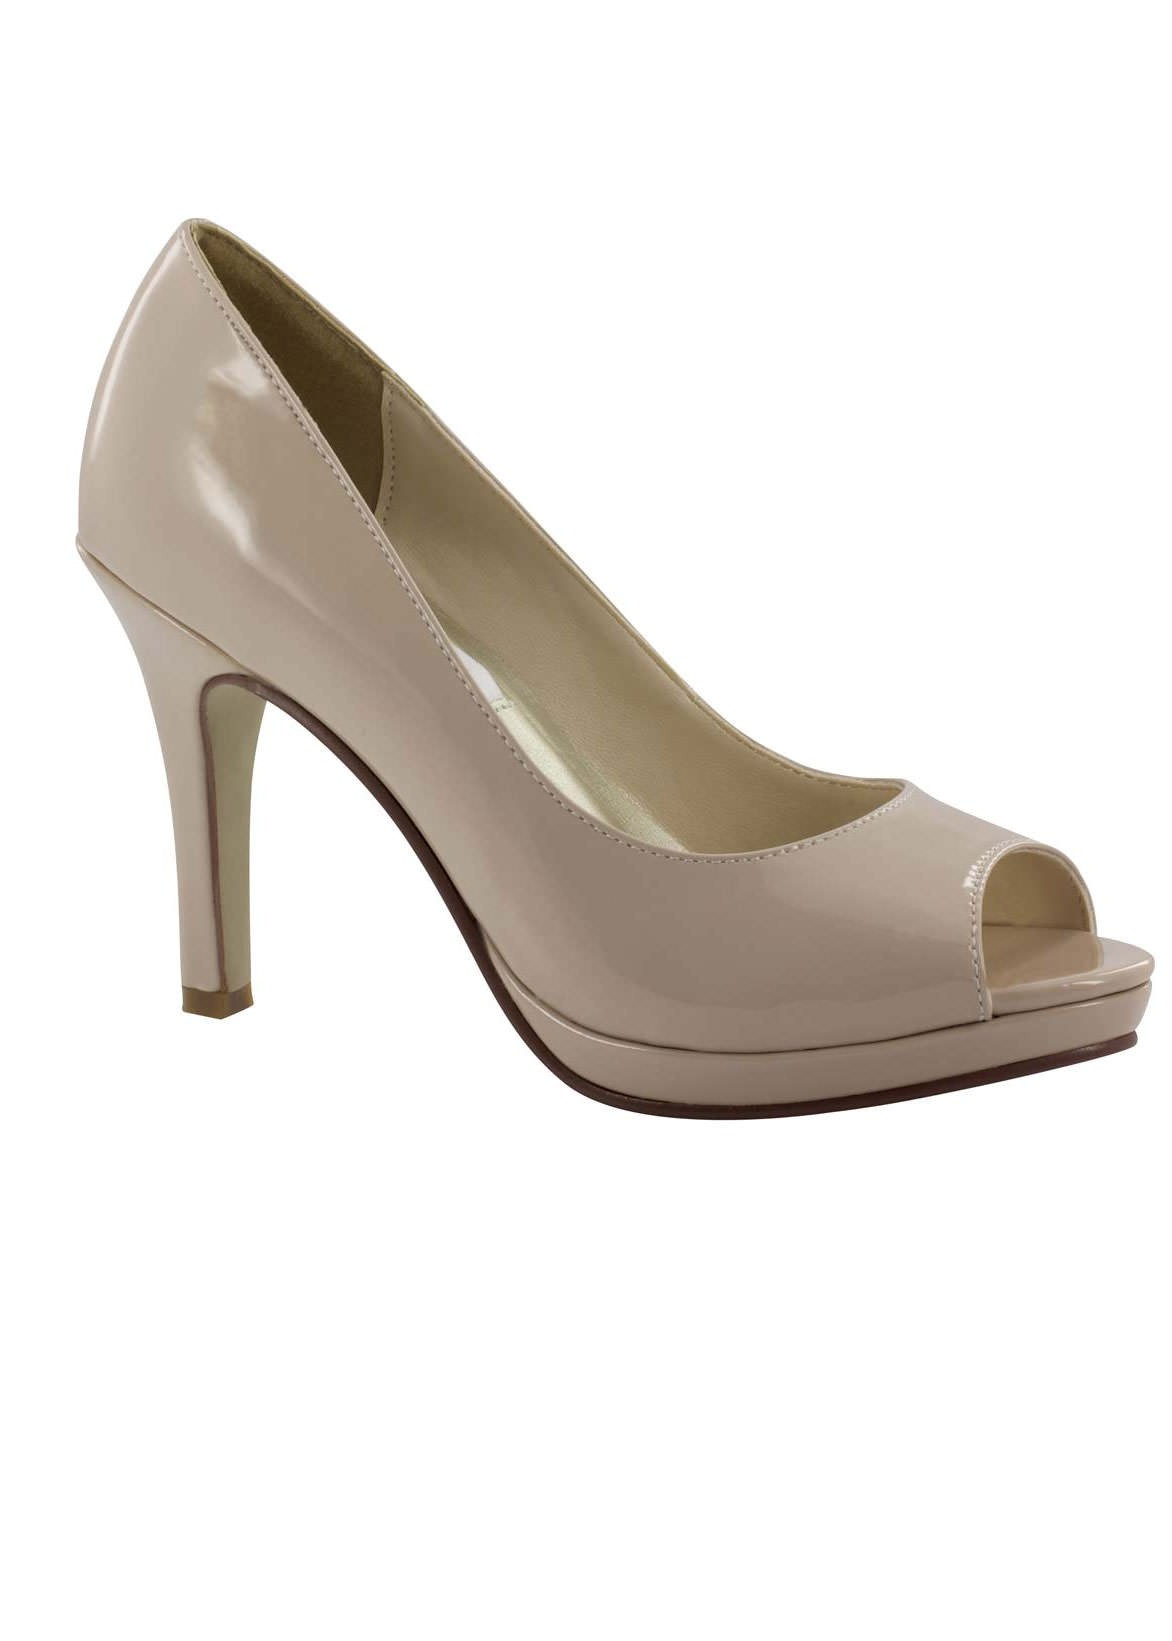 c440aa2230 Dyeables Sari 32213 - Nude Patent Pumps - RissyRoos.com